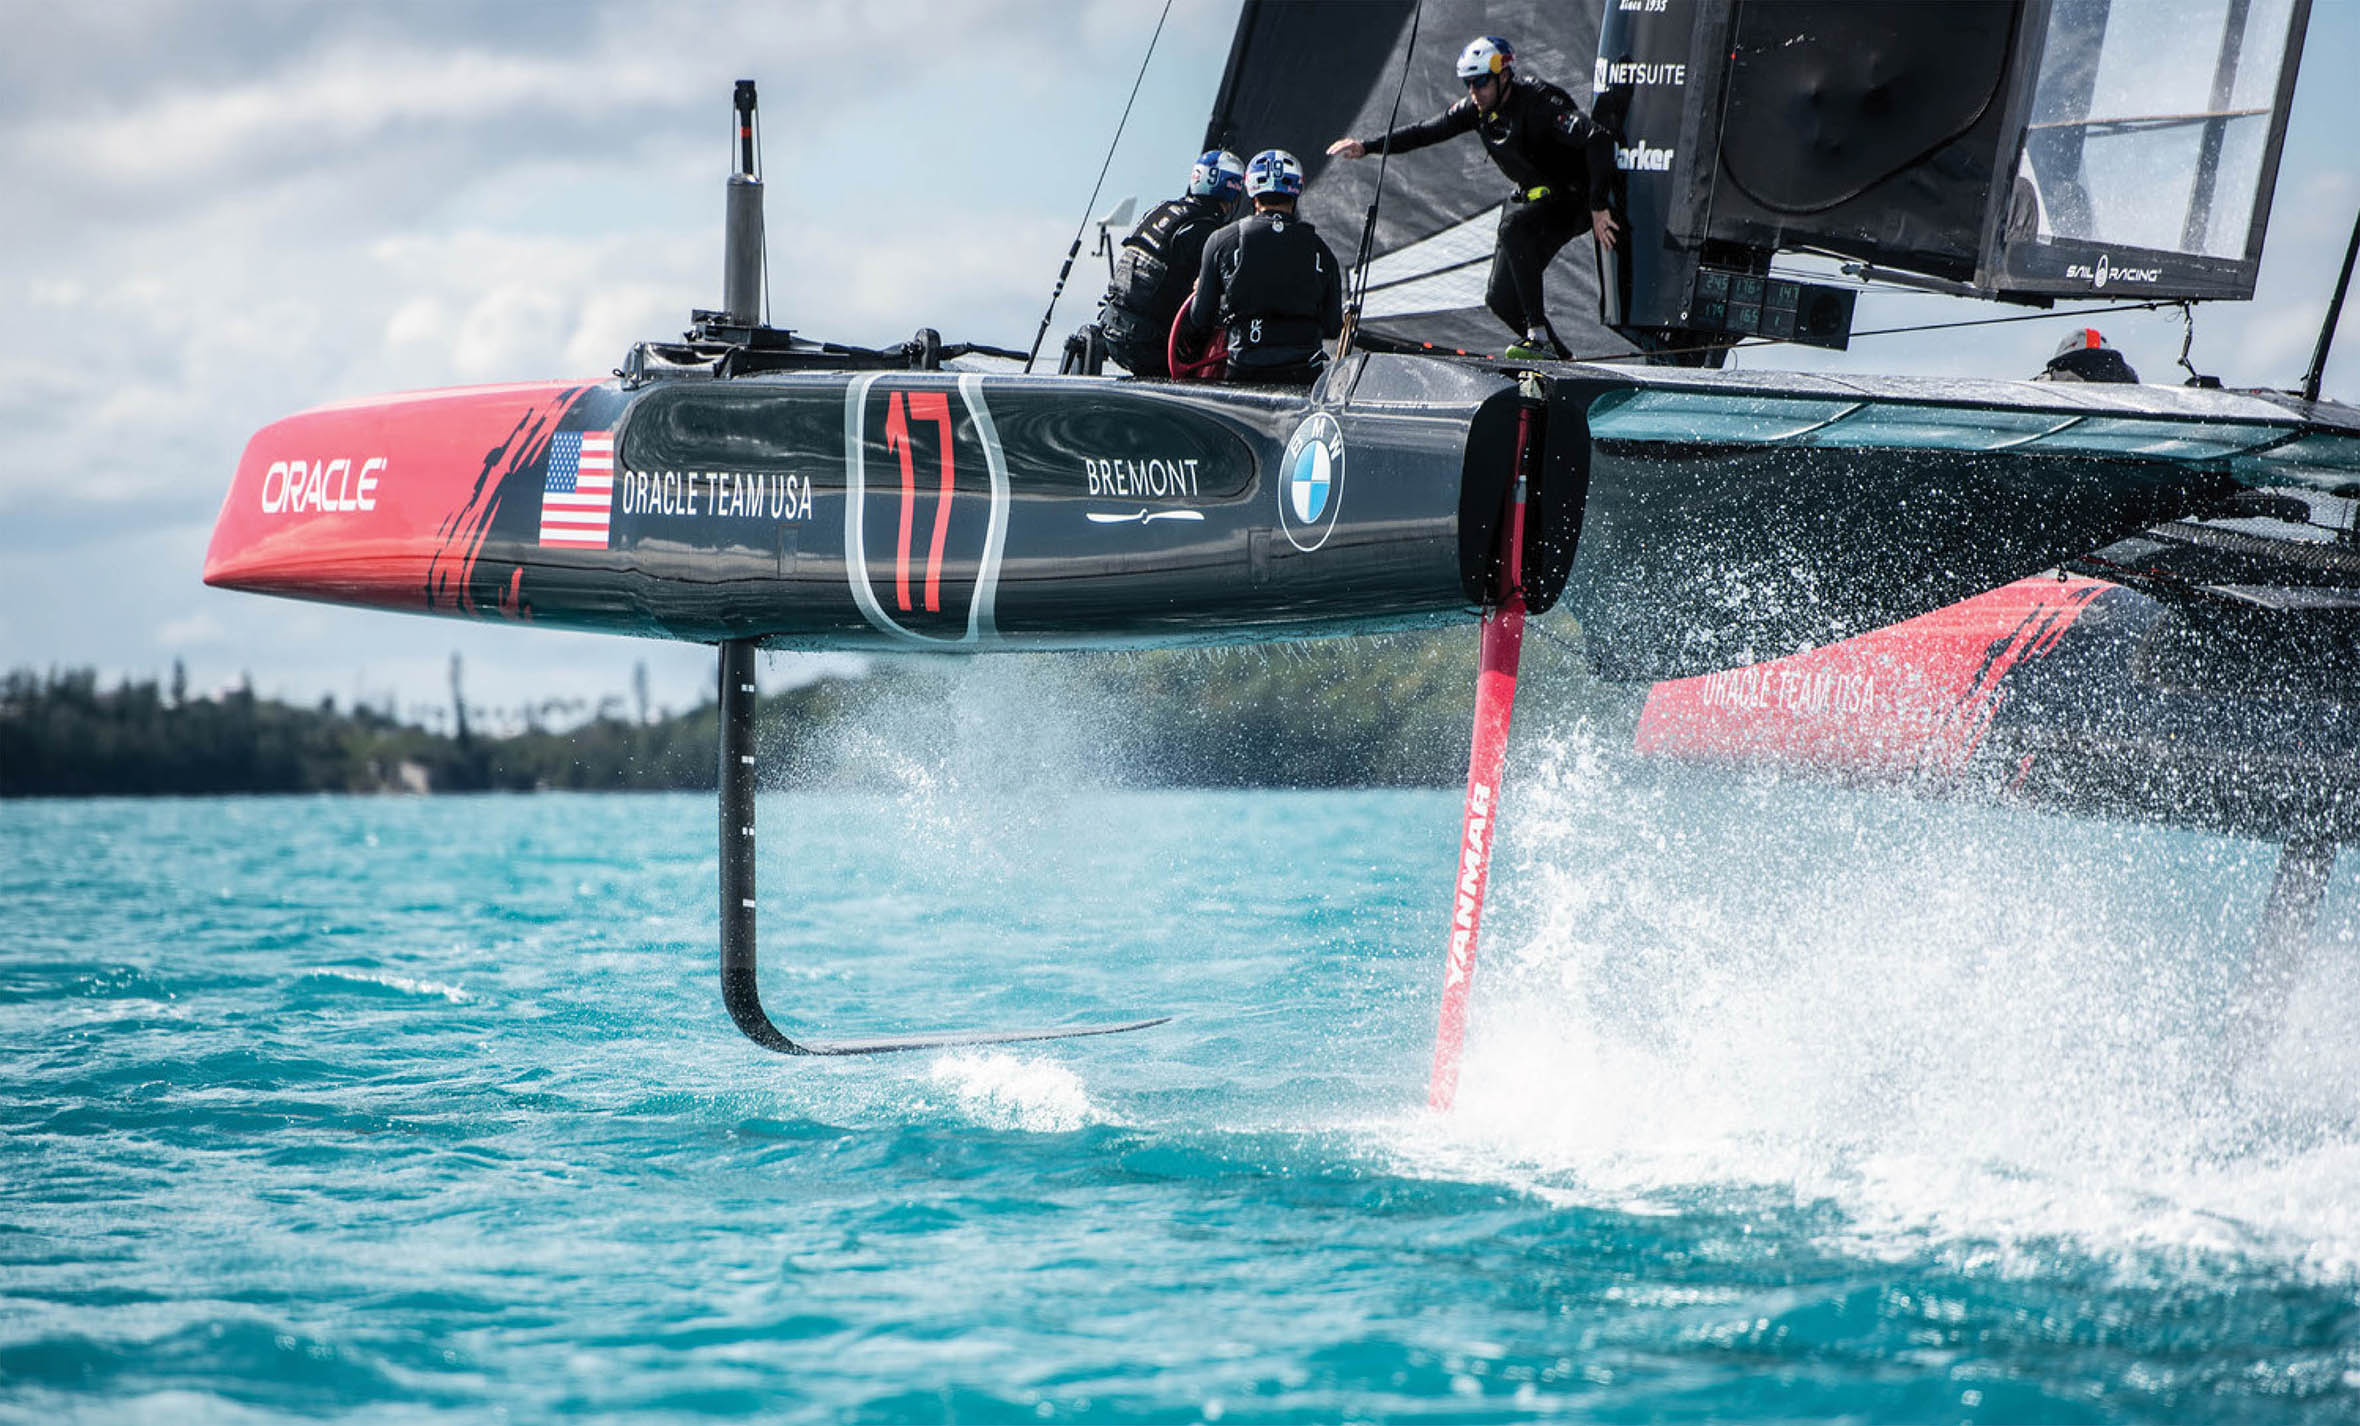 """ORACLE TEAM USA's AC45 catamaran uses hydrofoils to """"fly"""" above the water."""